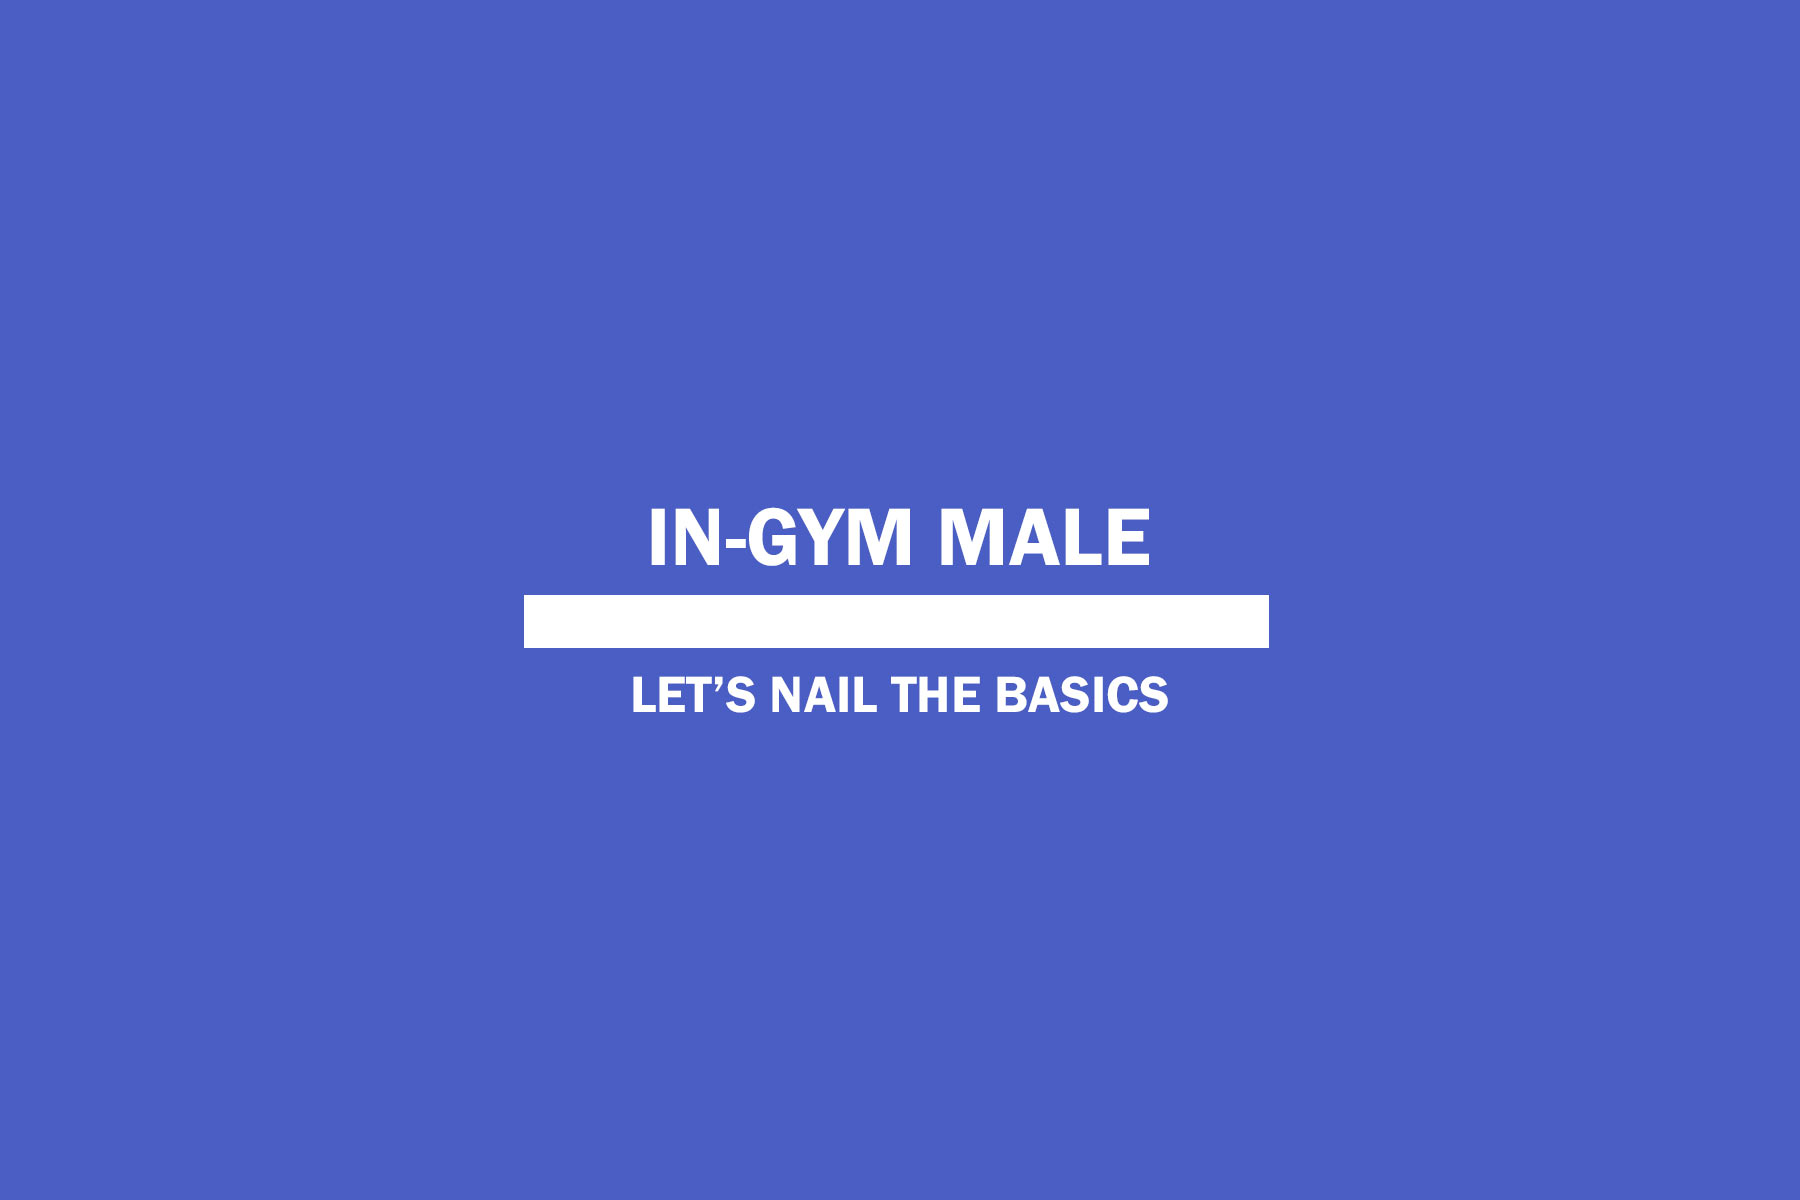 In-gym Male 15th of July to 5th of August